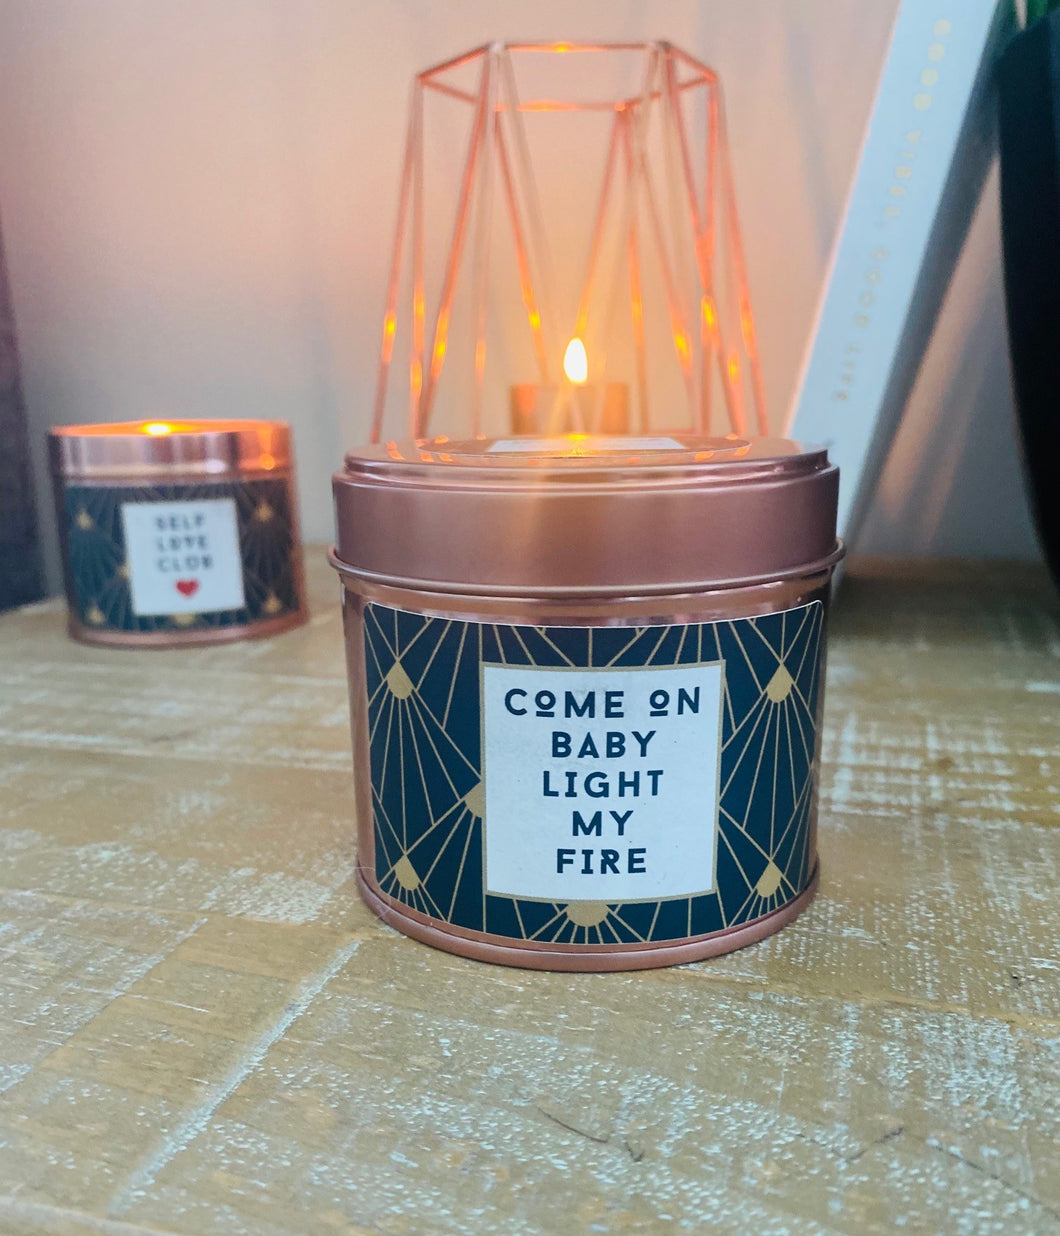 'Come On Baby Light My Fire' Soy Wax Candle (20cl) by stray funk design